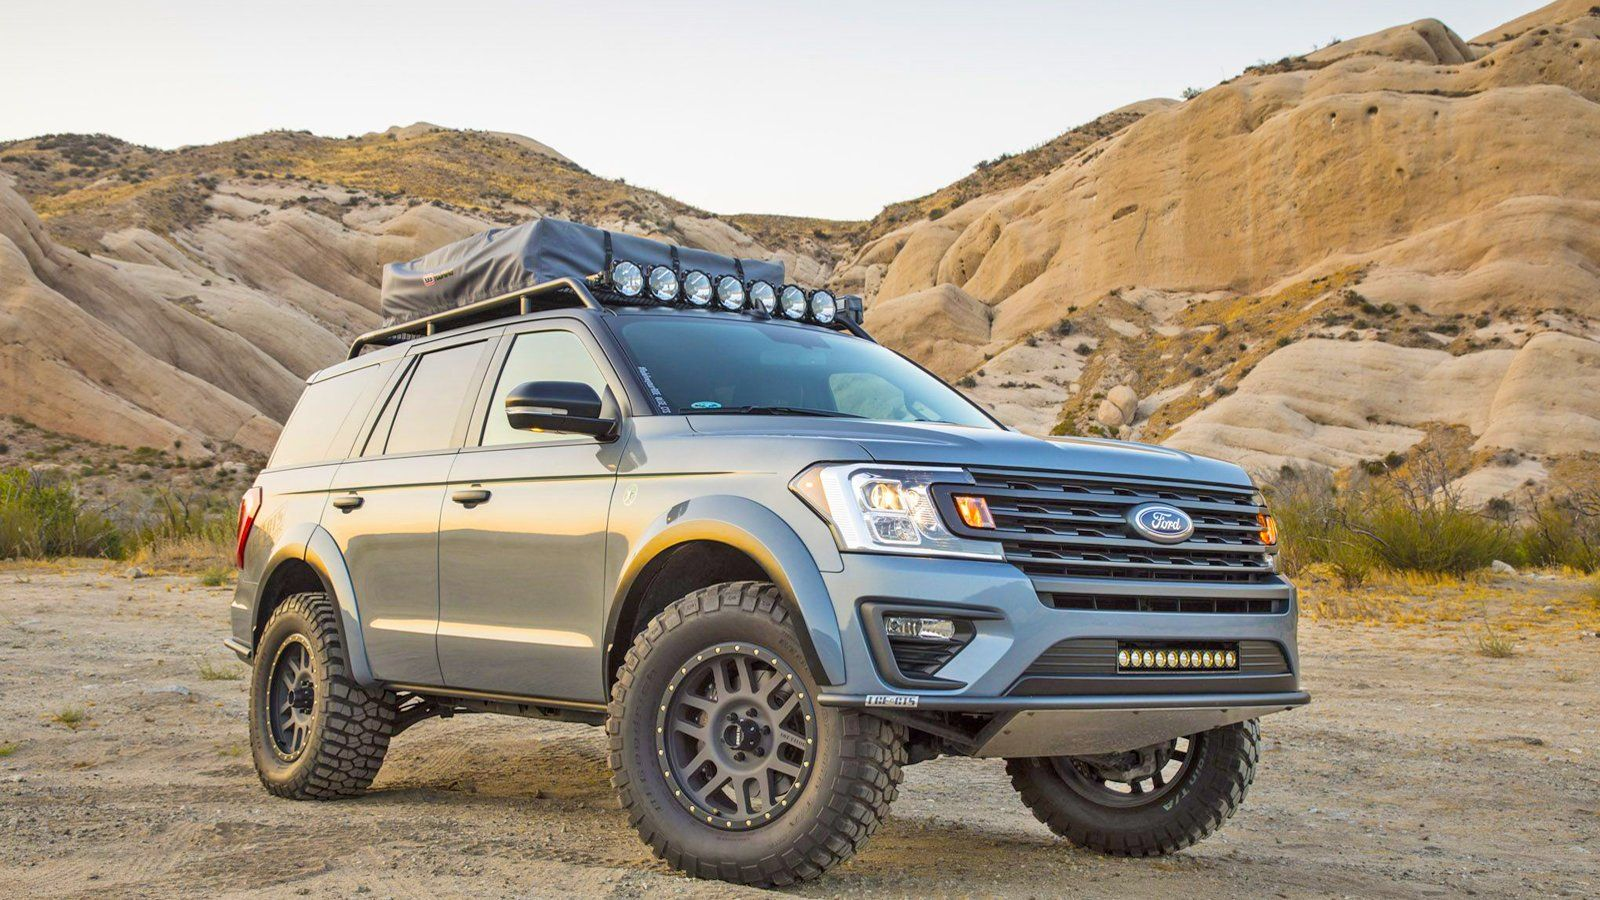 2018 OffRoad Expedition from LGECTS Ford expedition